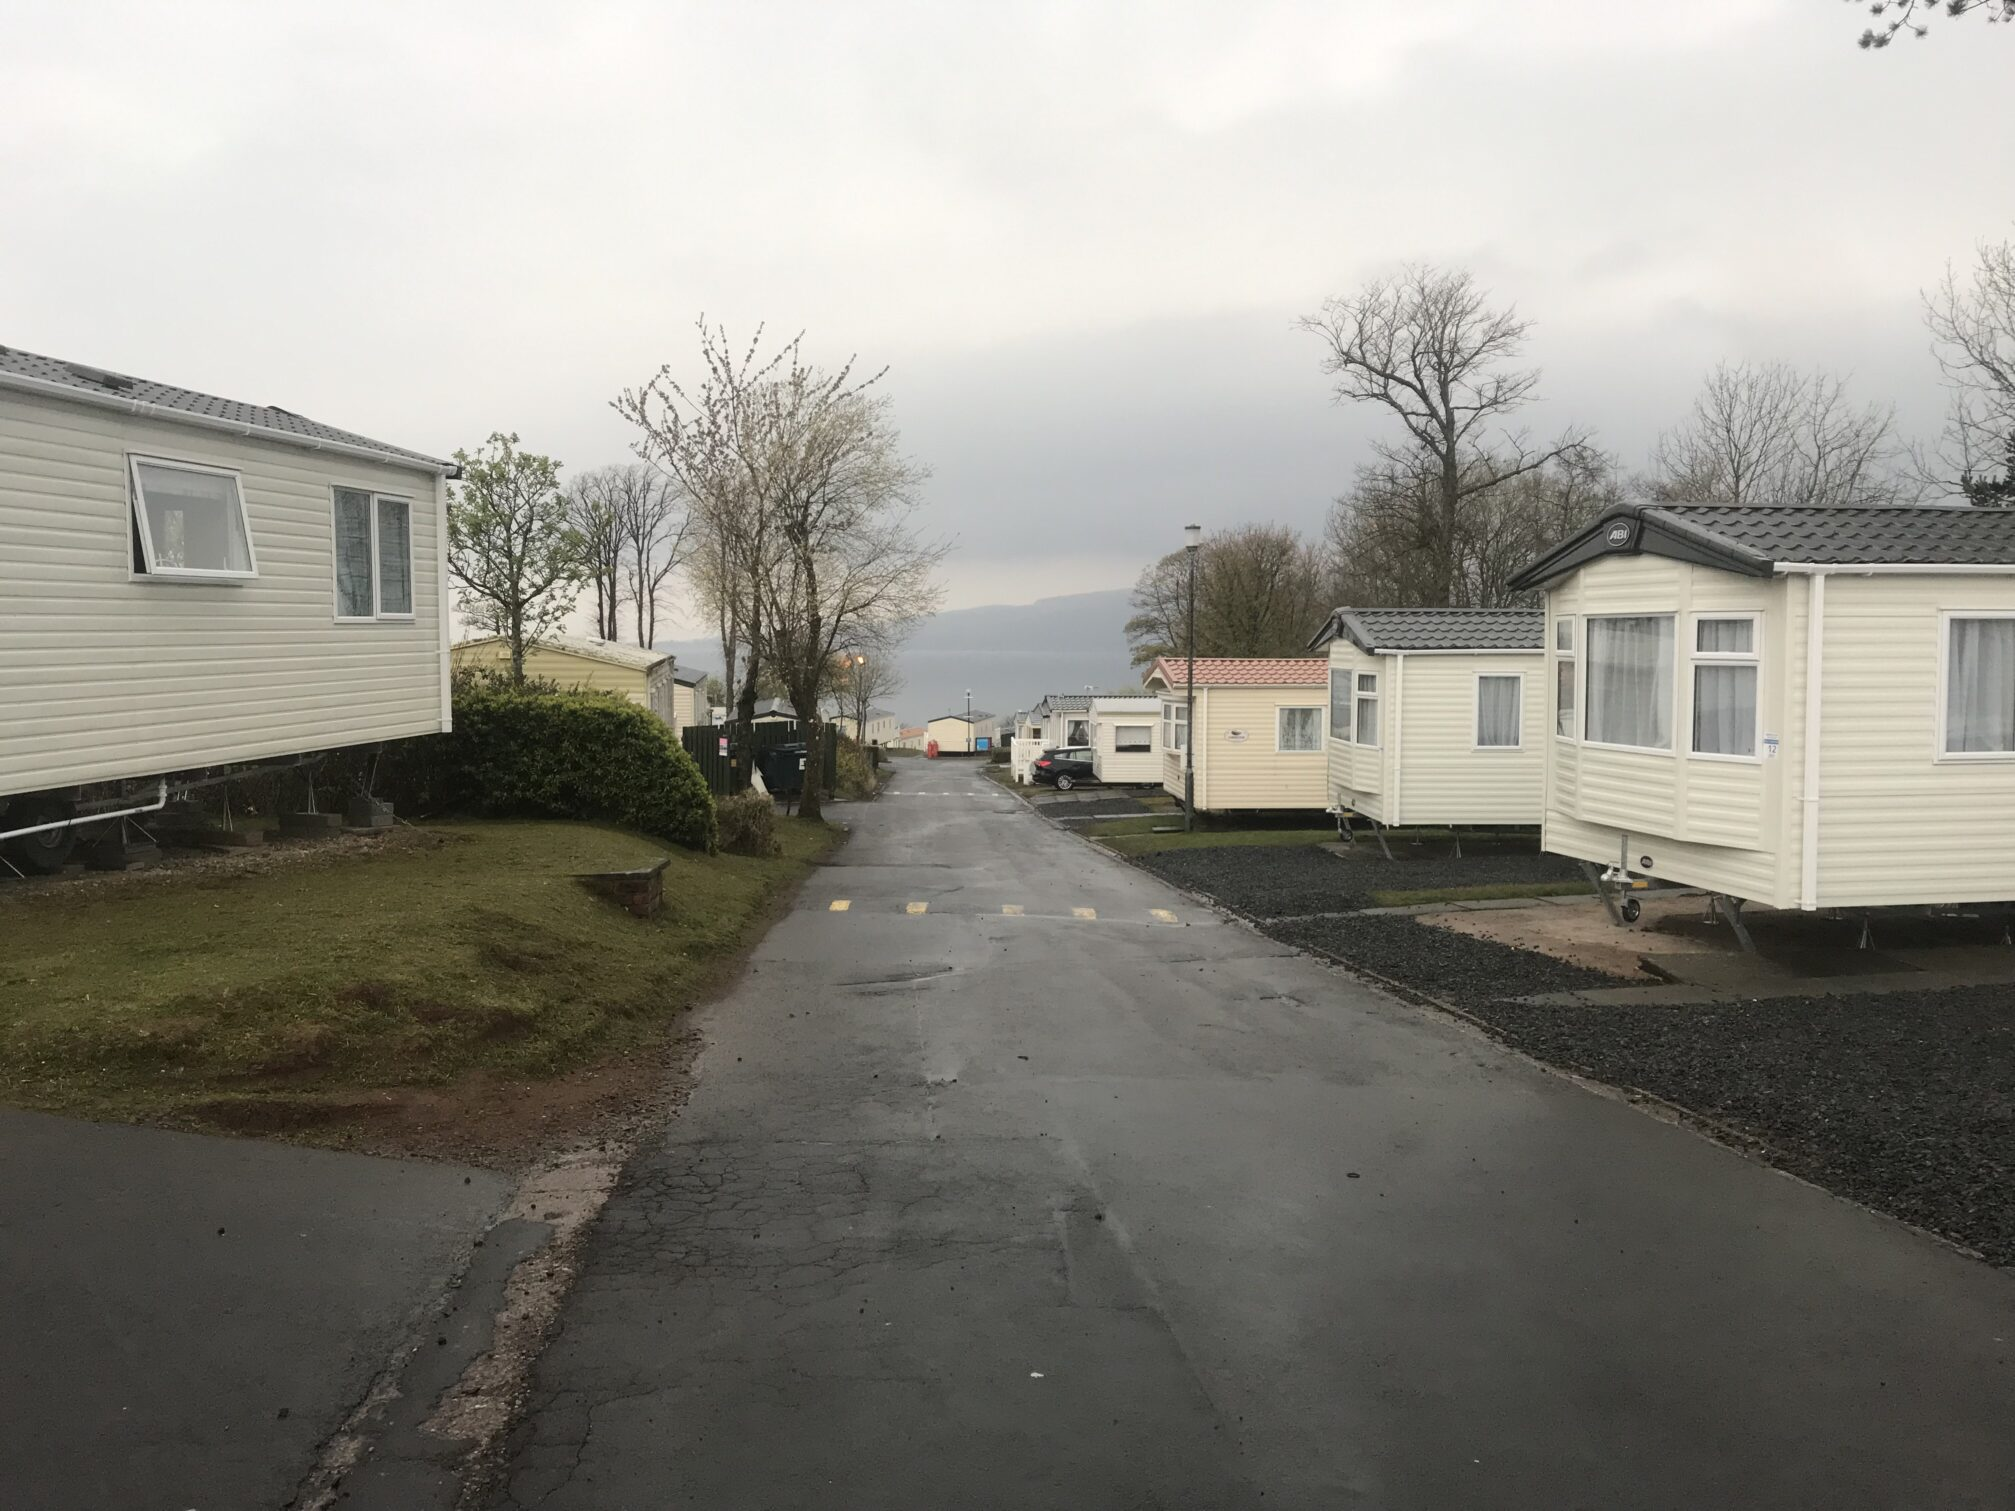 View down the road of Wemyss Bay cHoliday park showing caravans on both side and the firth of clyde ahead